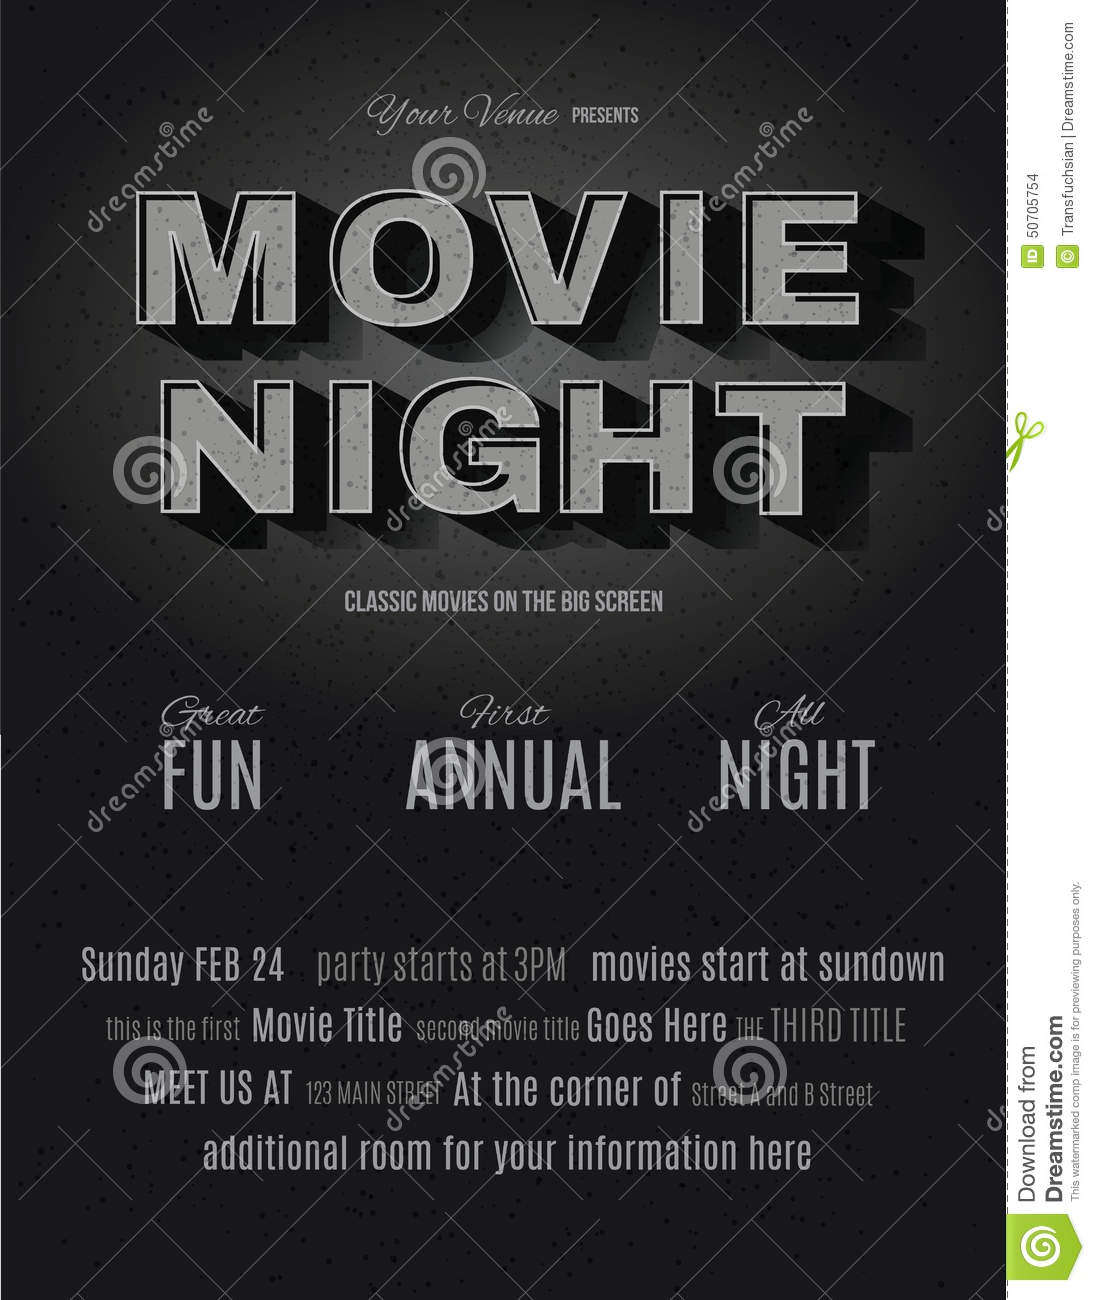 vintage movie night invitation template stock vector illustration